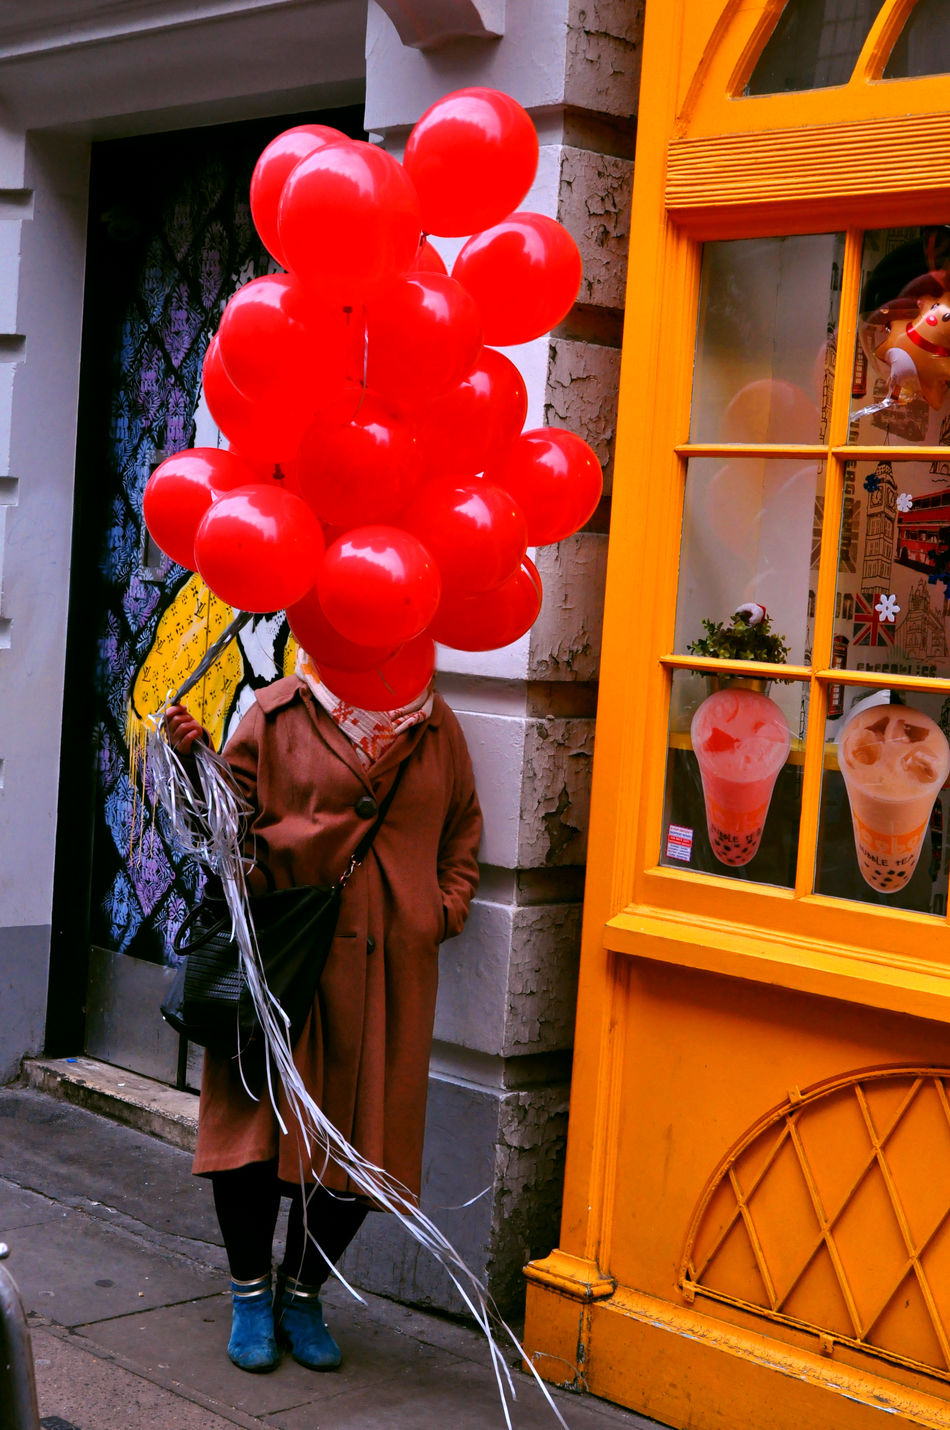 Moor Street, Soho Balloon Balloons Balloons🎈 Color Colour Day Event Freshness Fun Funny London Red Red Street Urban